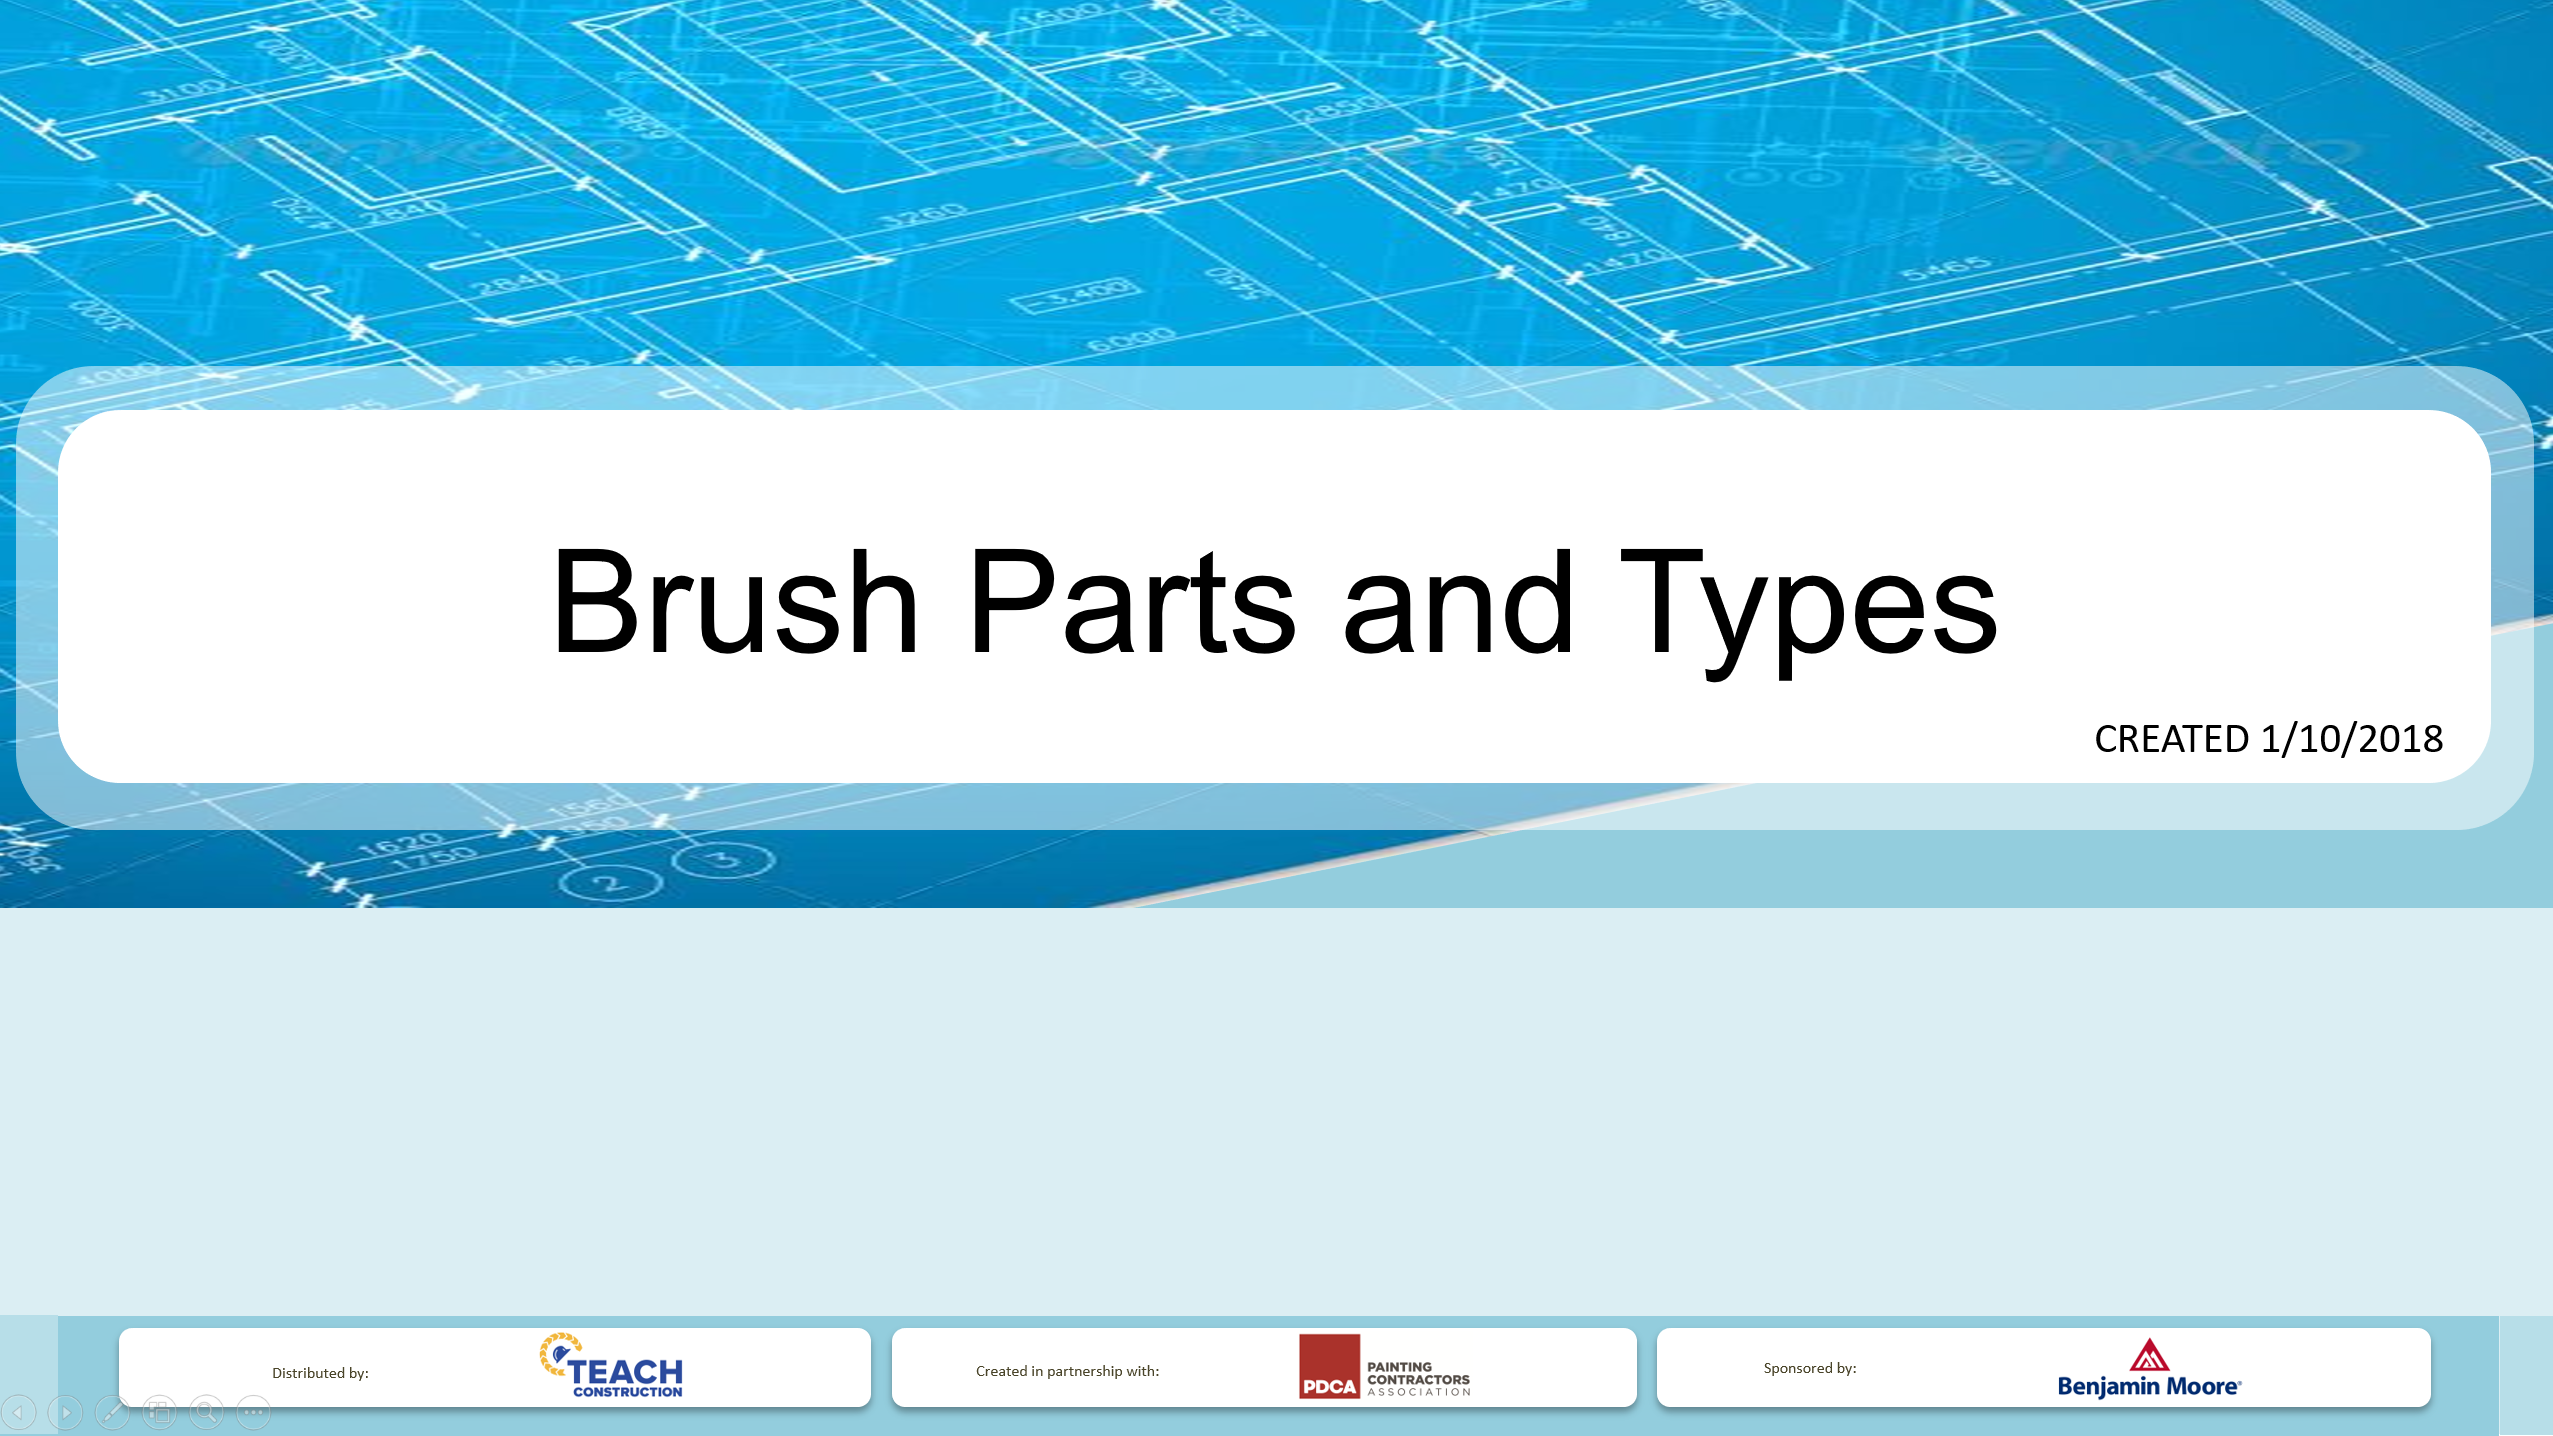 Paint Brush Parts and Types - Presentation Image